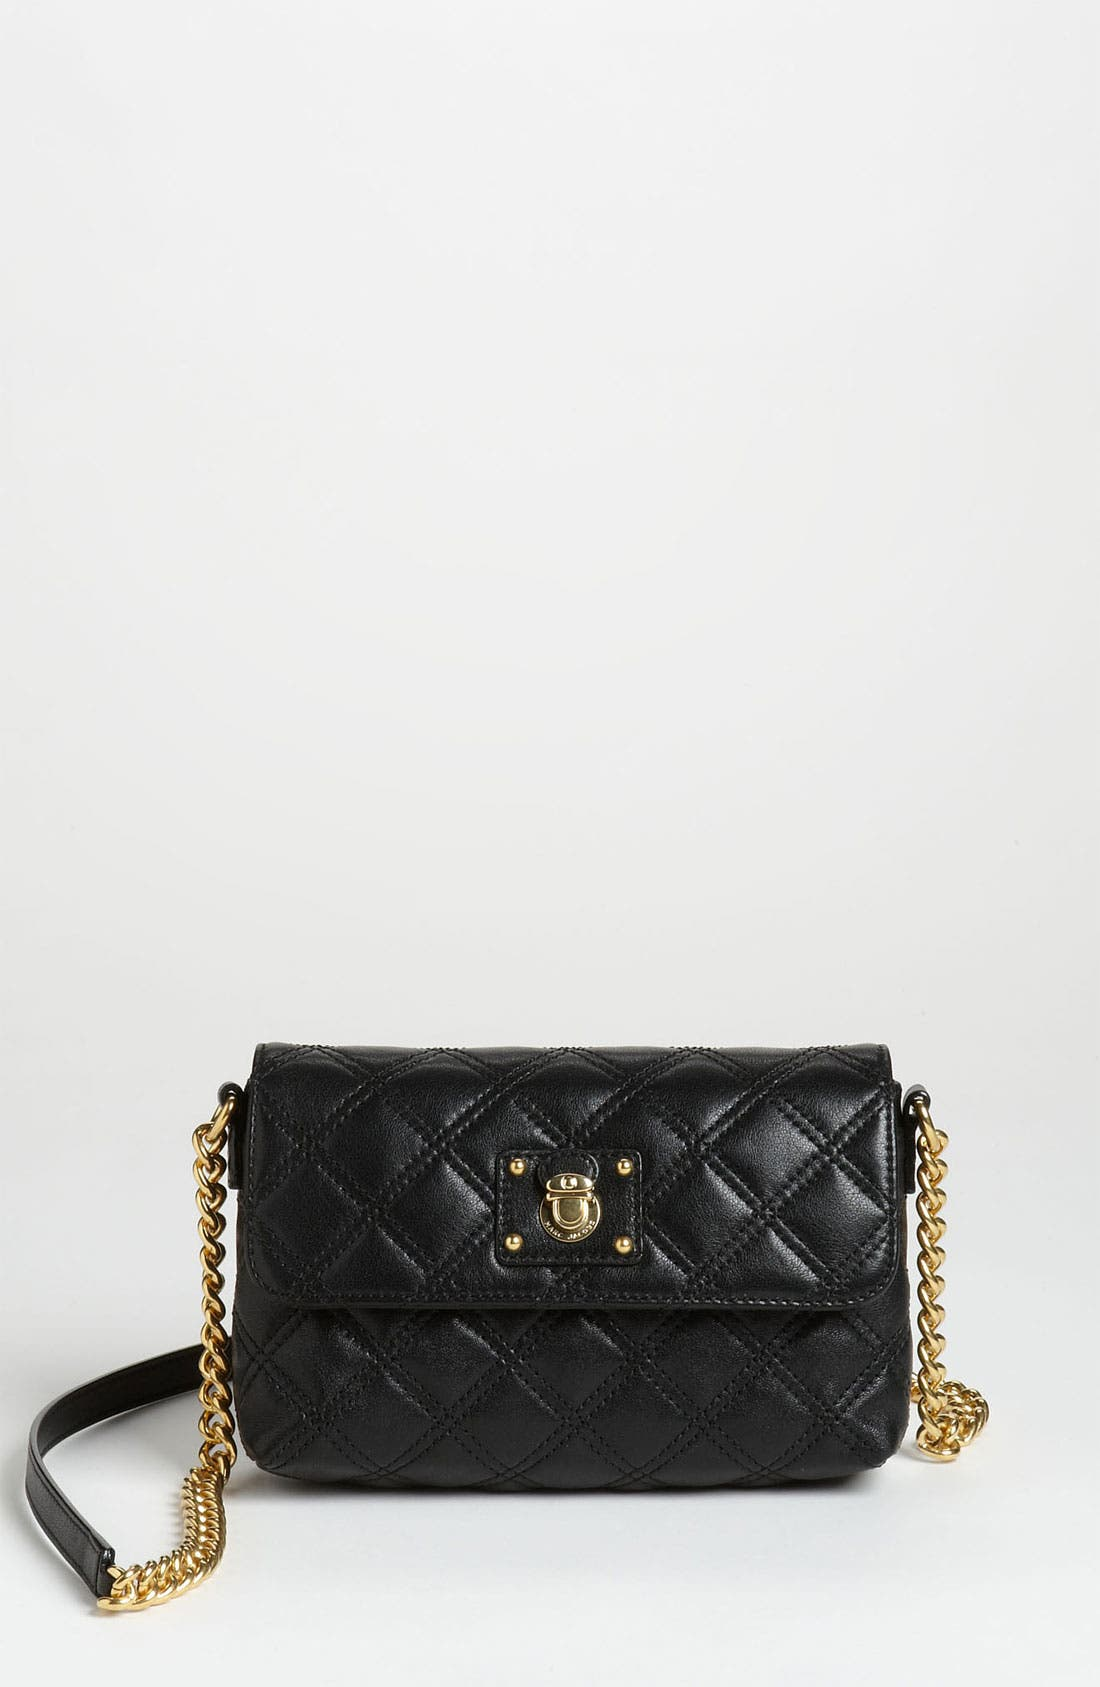 Alternate Image 1 Selected - MARC JACOBS 'Quilting - Single' Leather Shoulder Bag